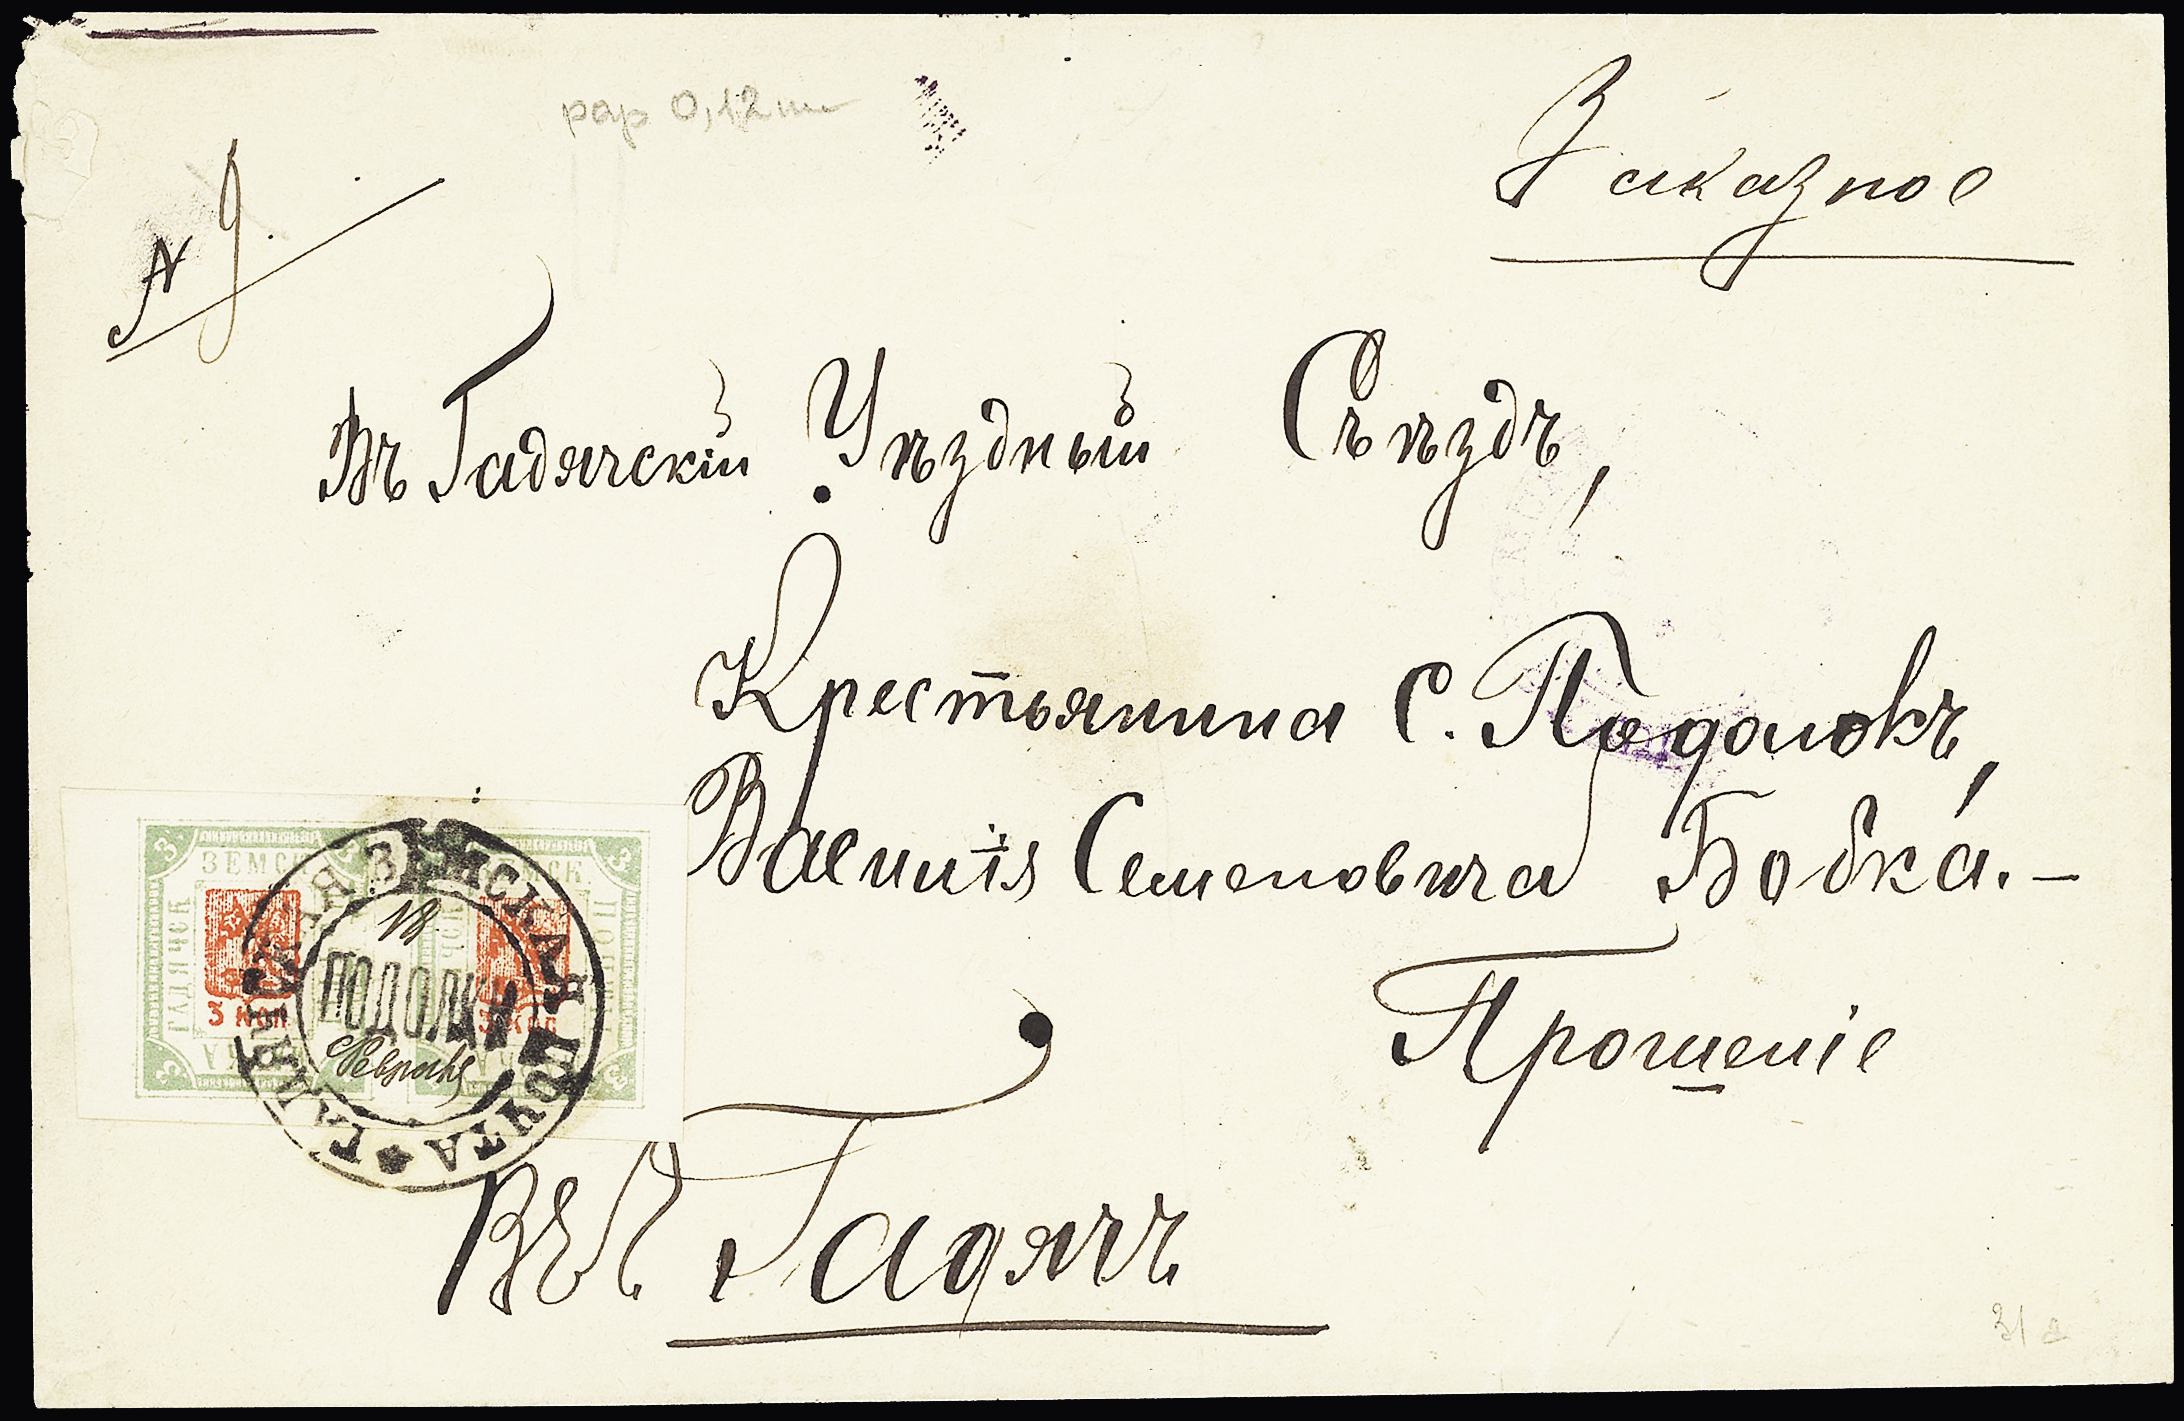 Lot 445 - Eastern Europe » RUSSIA - ZEMSTVOS » Gadiach  (Poltava Government)  -  Le Timbre Classique SA SALE ON OFFERS N ° 37 PARIS